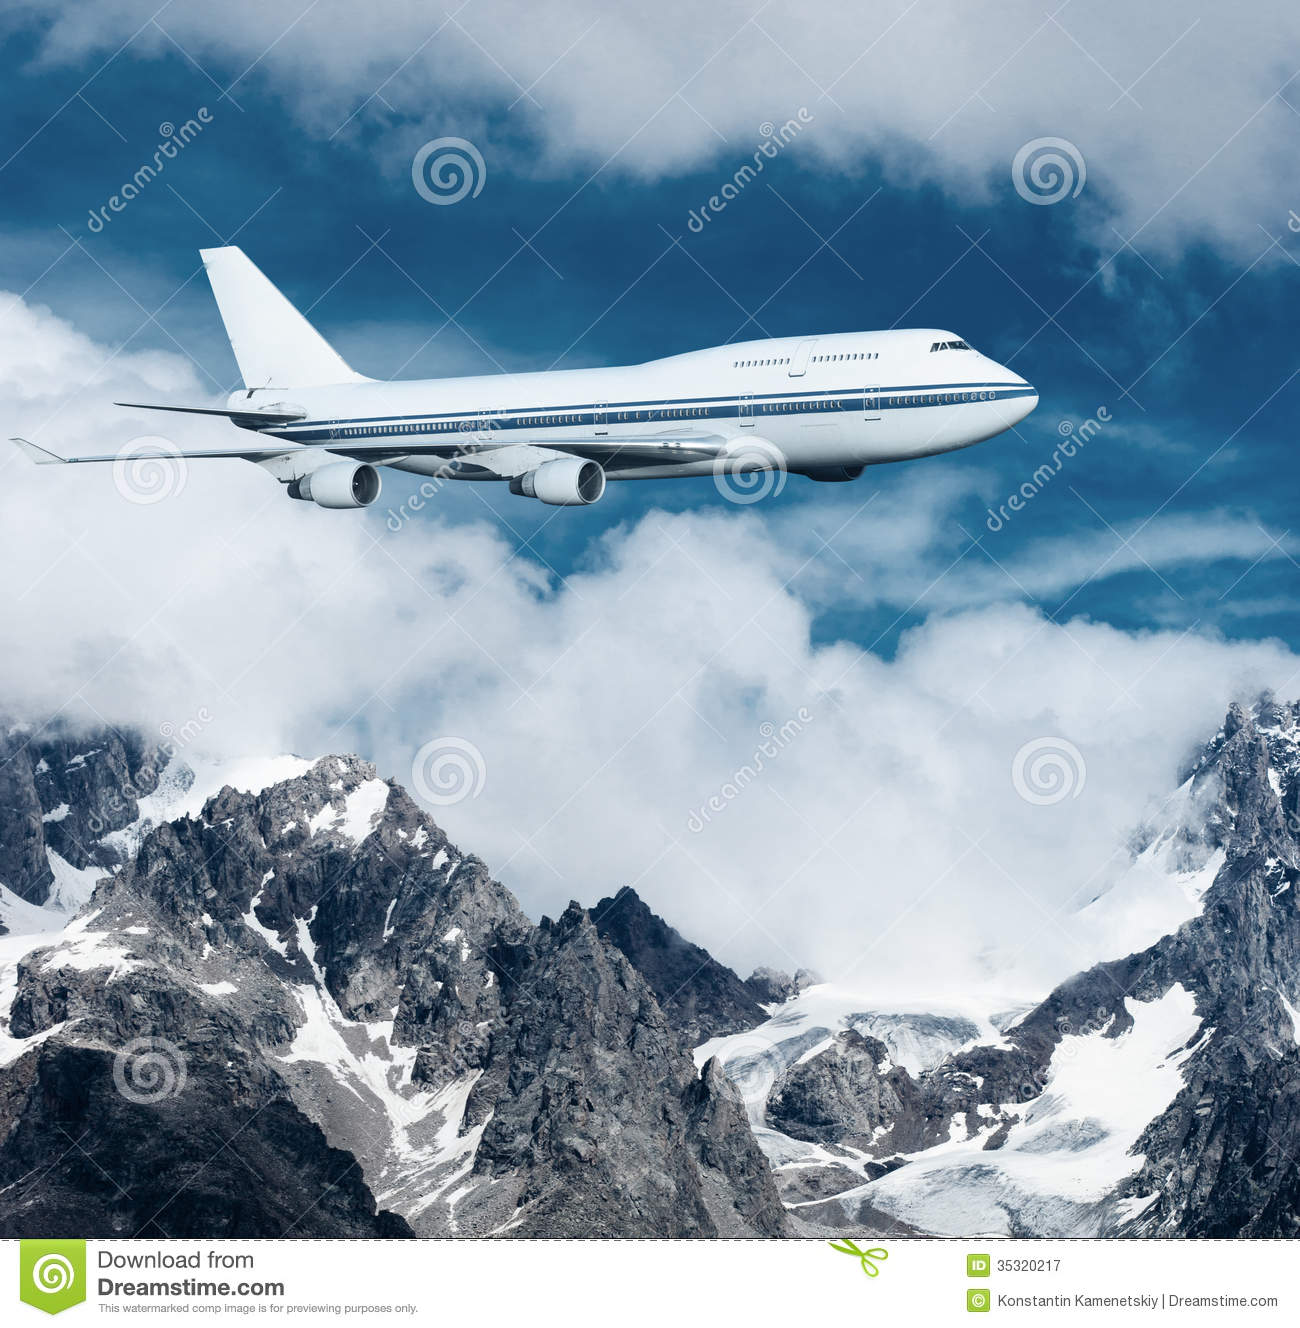 plane clouds and mountains - photo #9